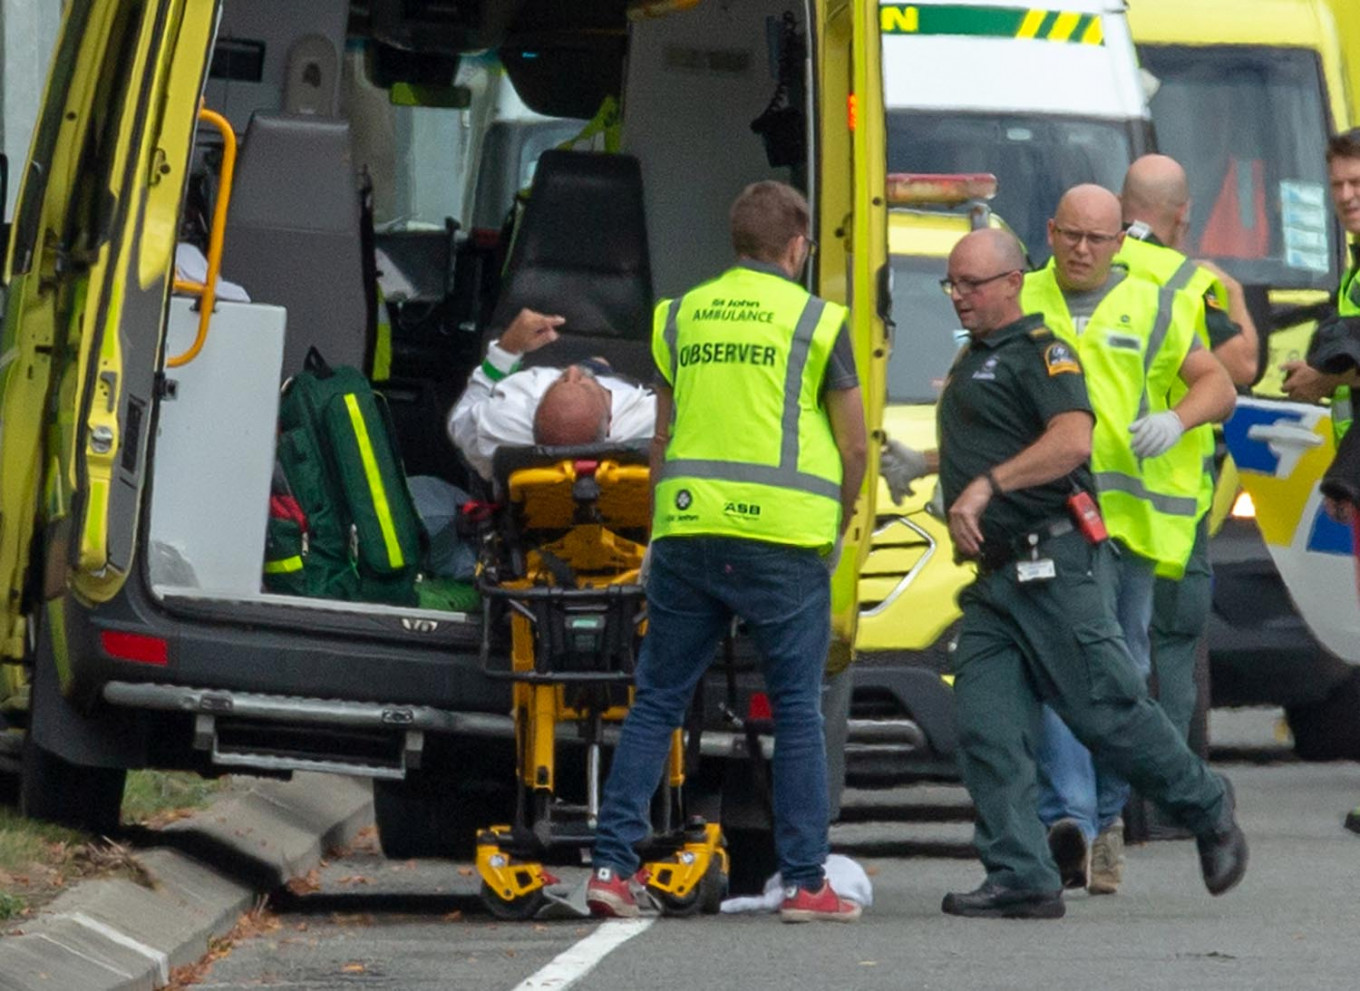 Six Indonesians were inside attacked New Zealand mosque: Foreign Ministry